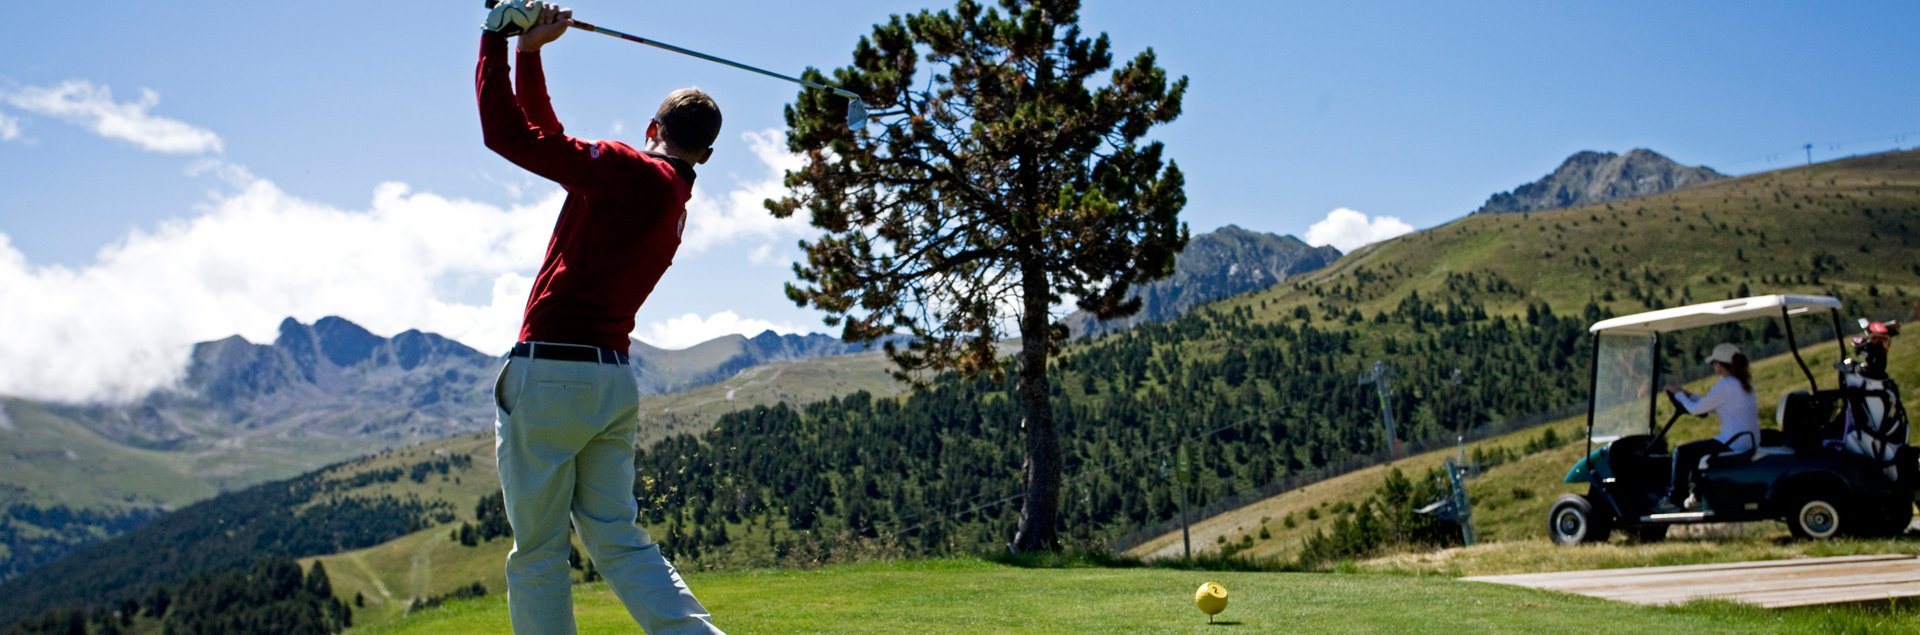 golf, green fee, inclos, montanya, hotel village, confort